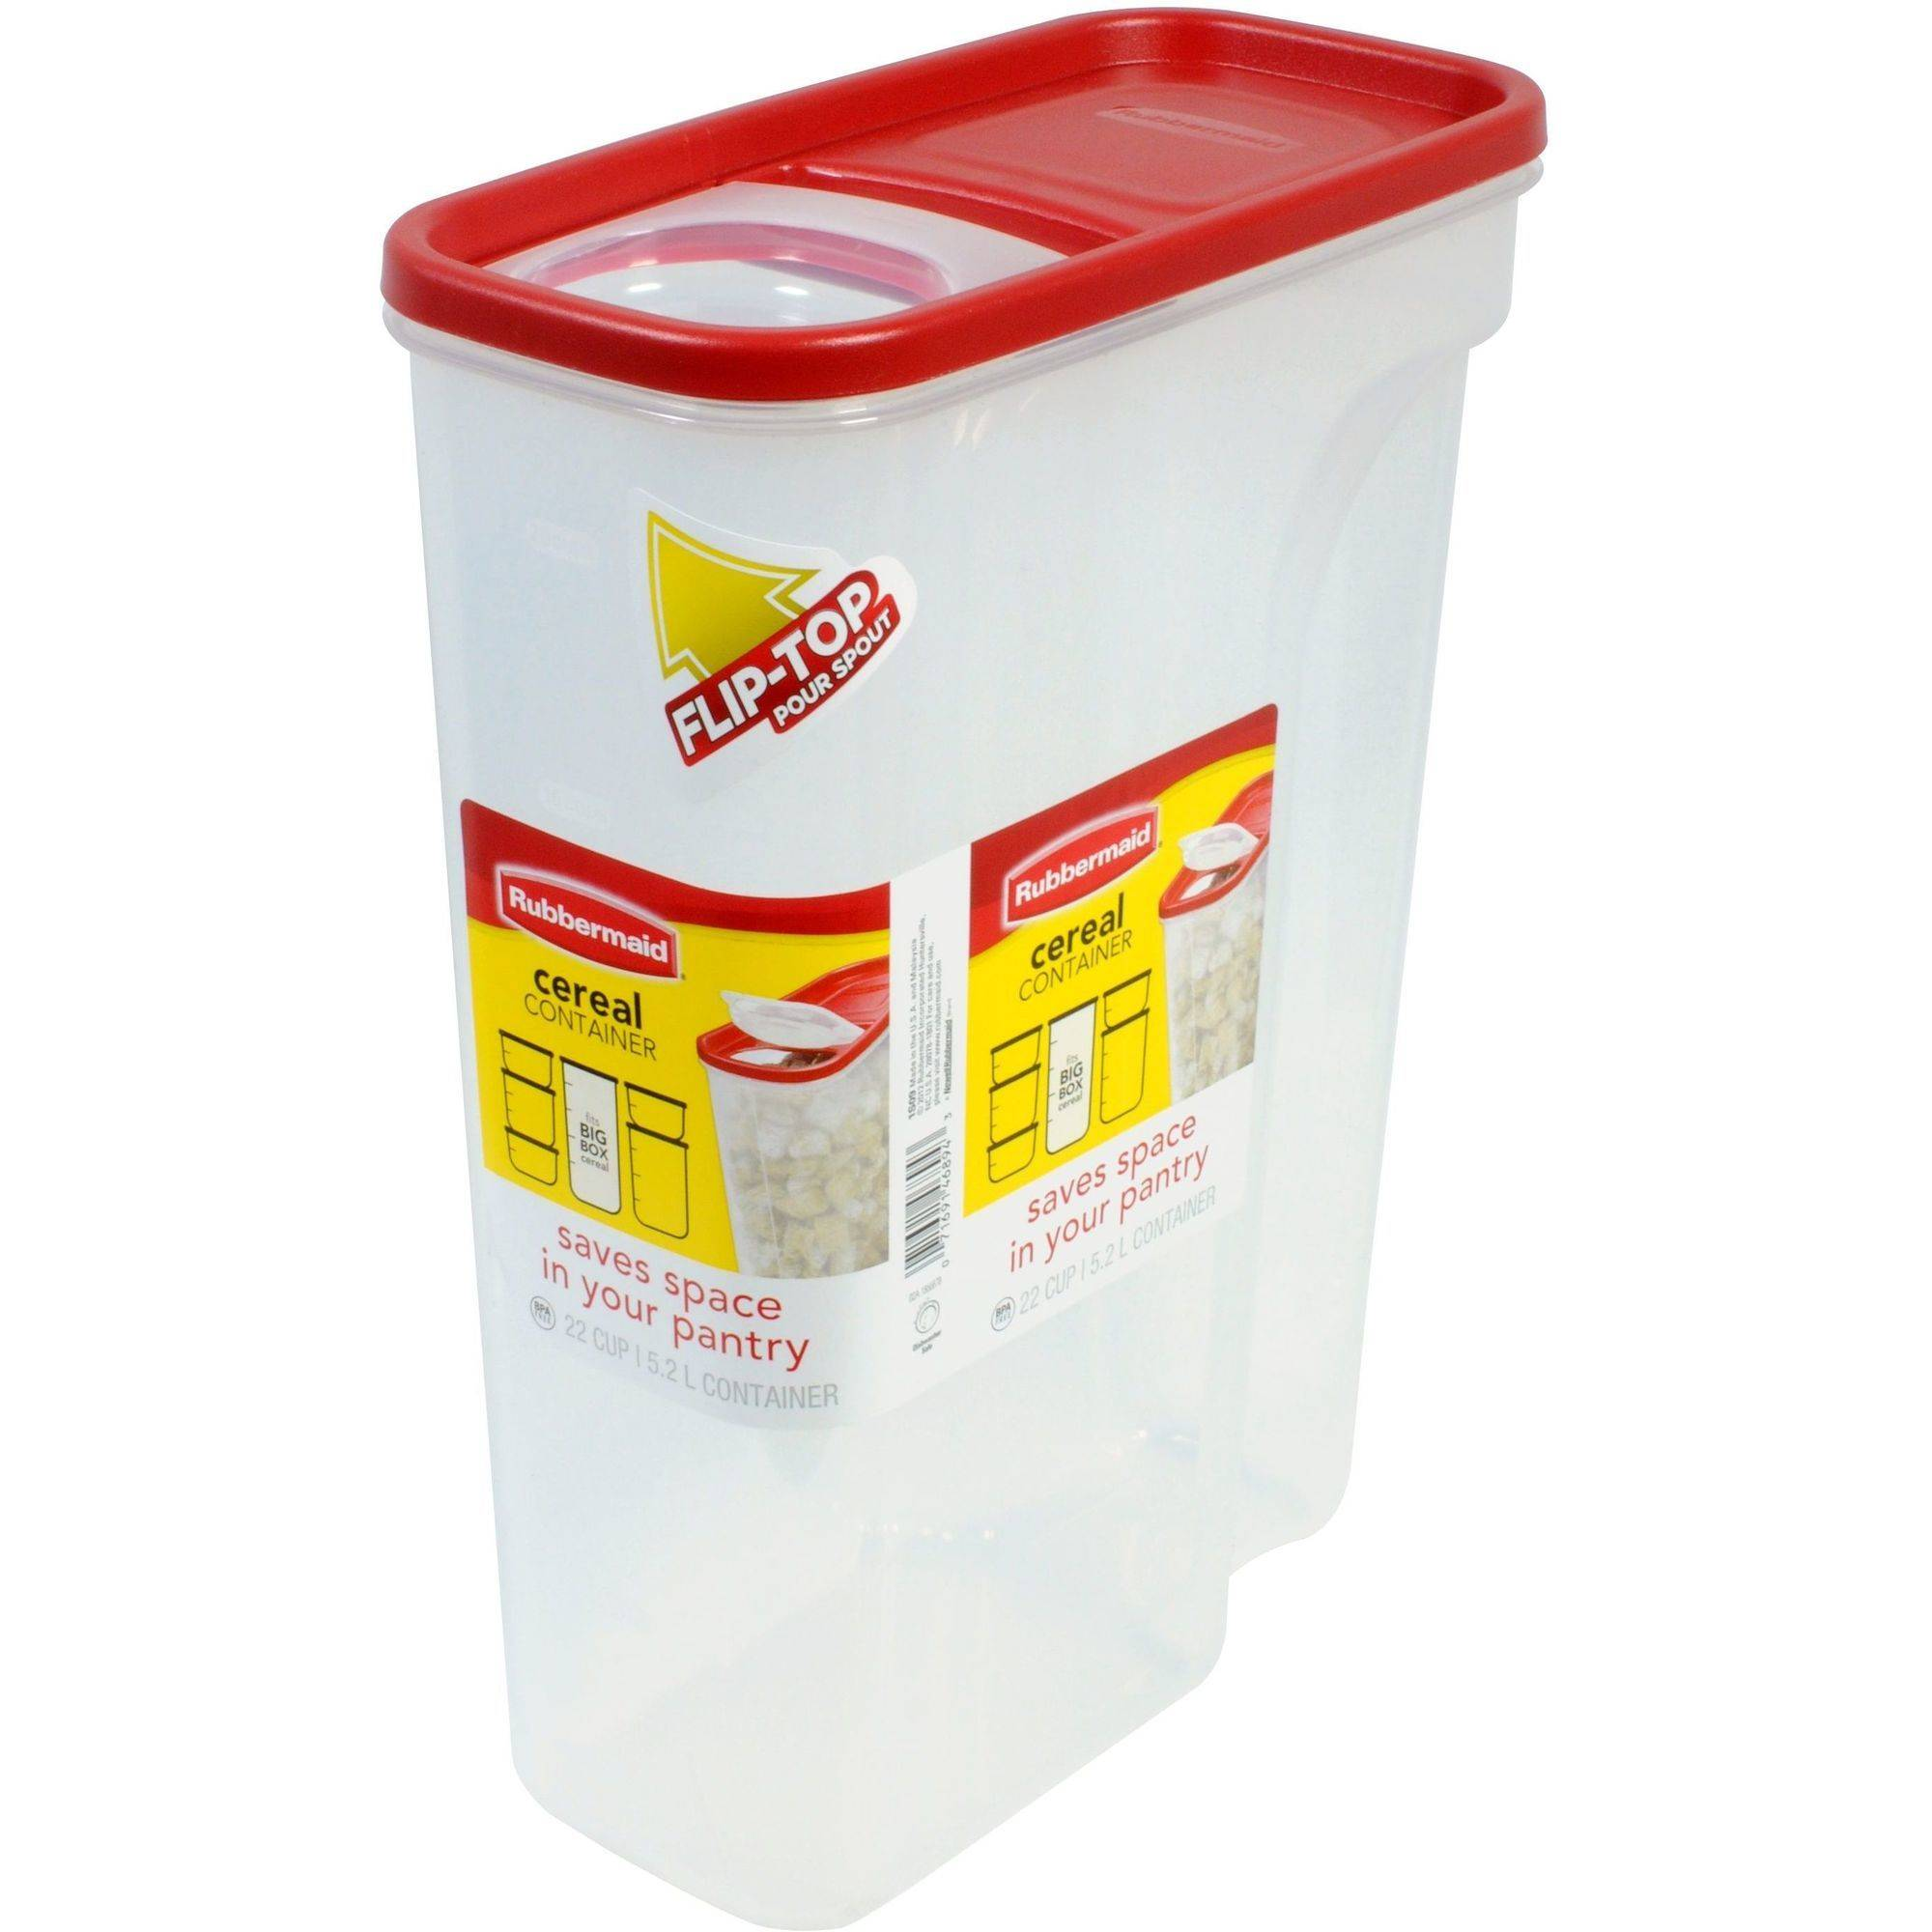 Rubbermaid 22-Cup Dry Food Cereal Keeper